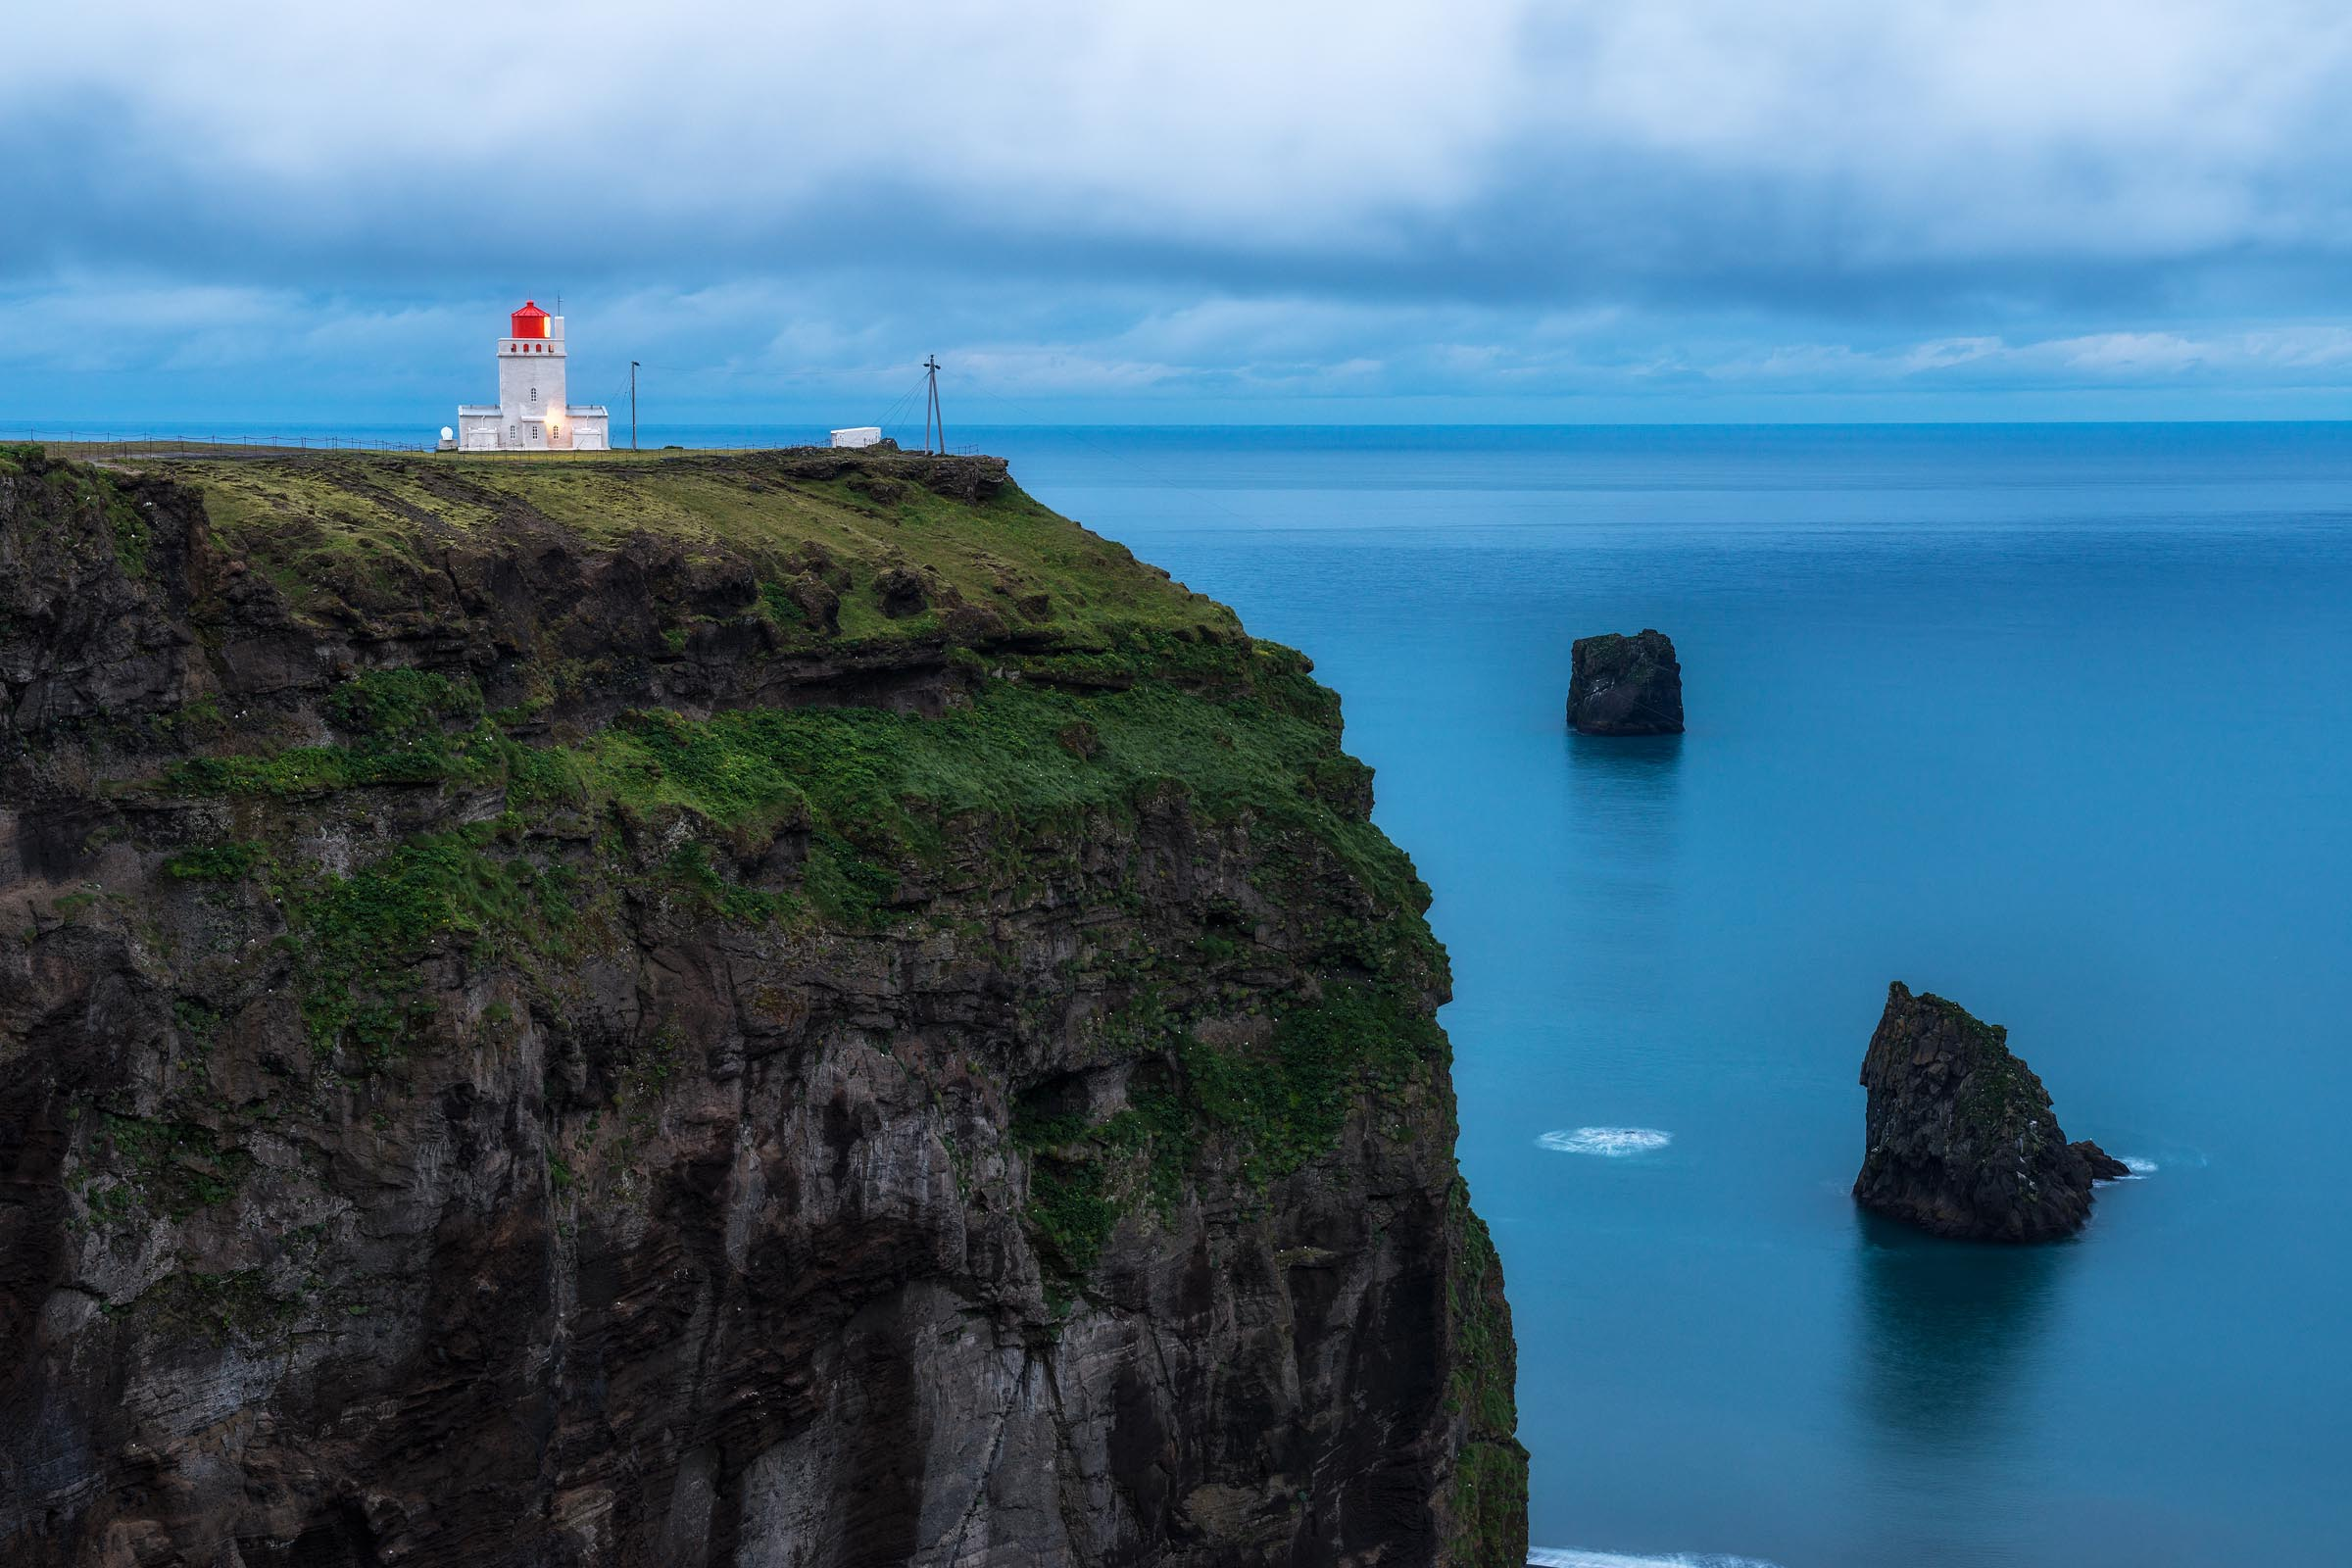 Photograph of Dyrholaey Lighthouse in Vik, Iceland by Brent Goldman Photography